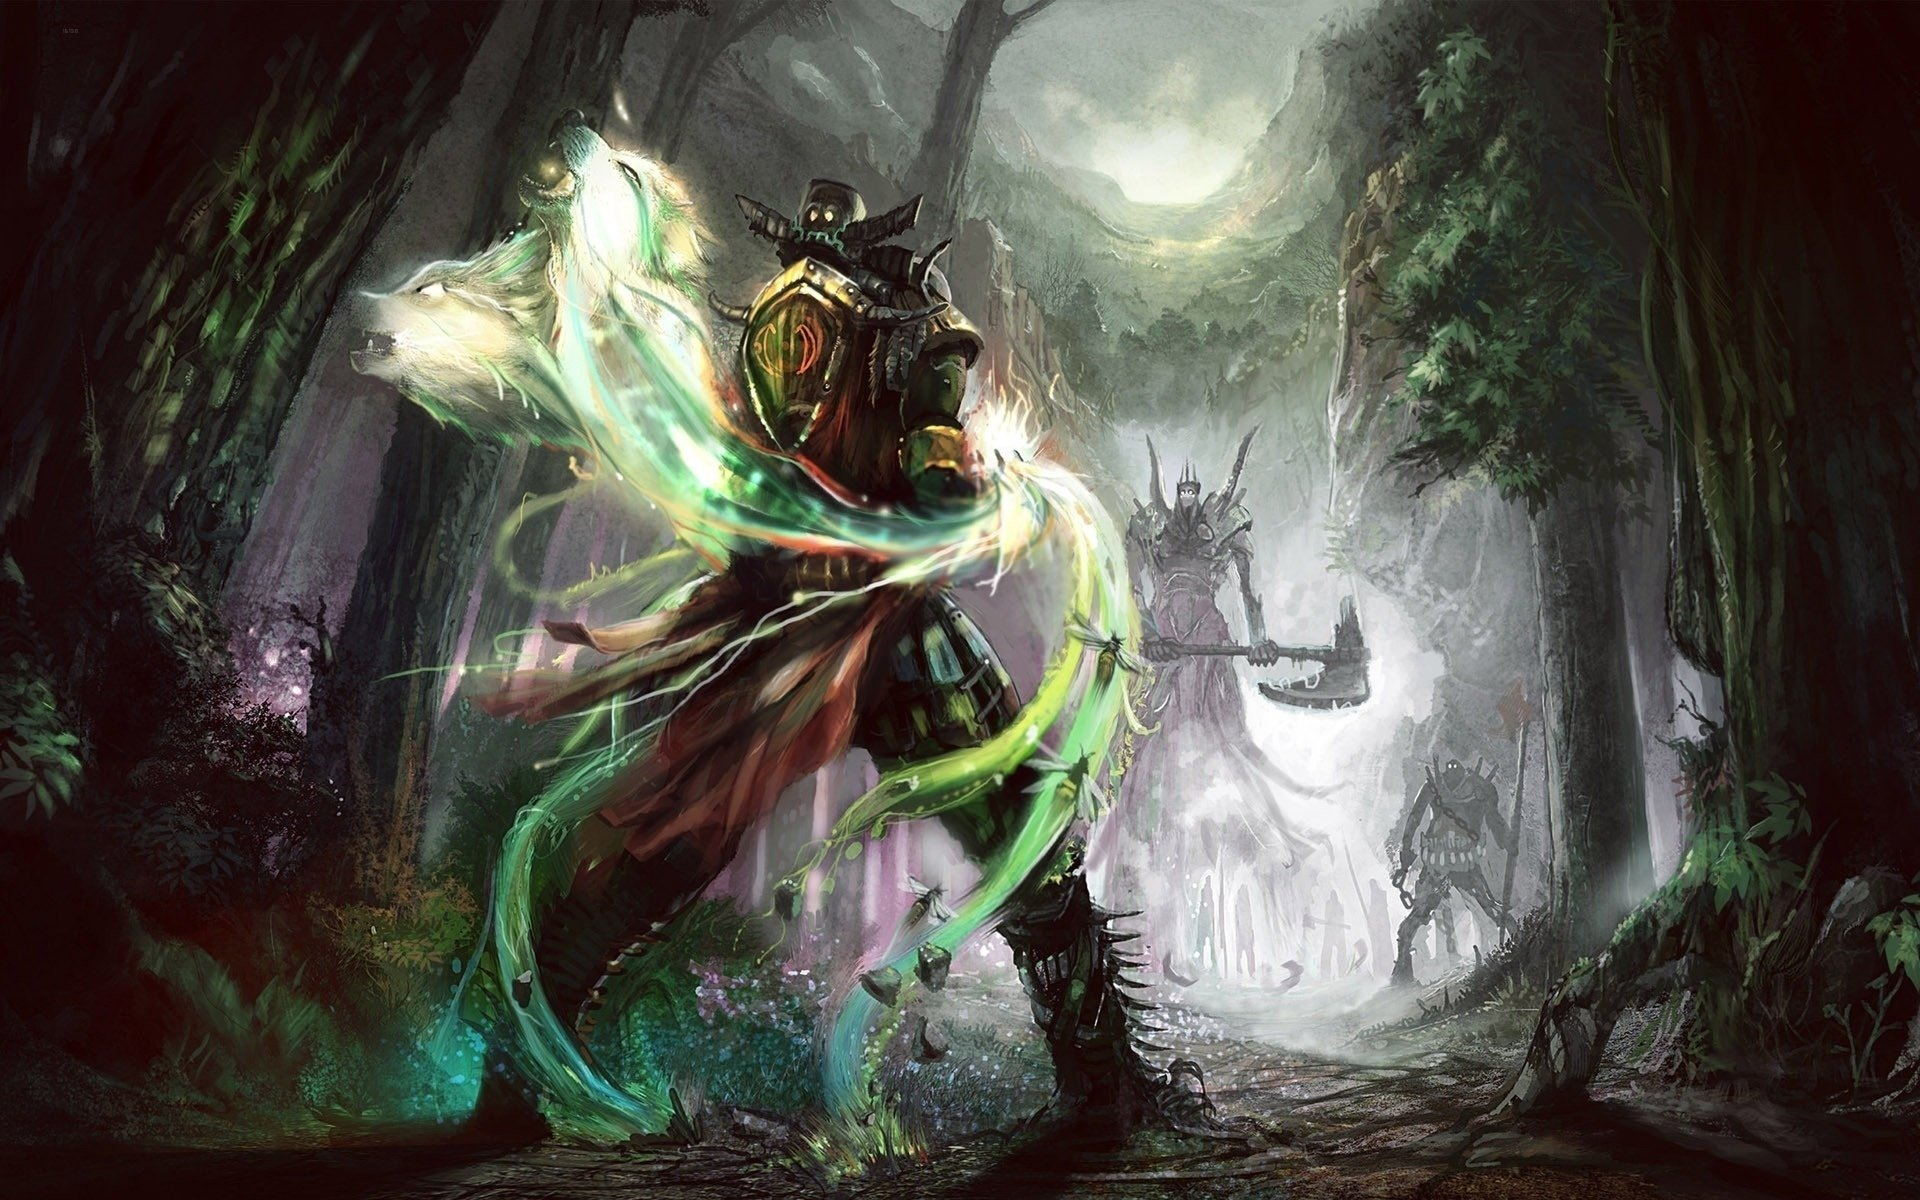 Fantasy - Battle  Warrior Knight Fantasy Wallpaper